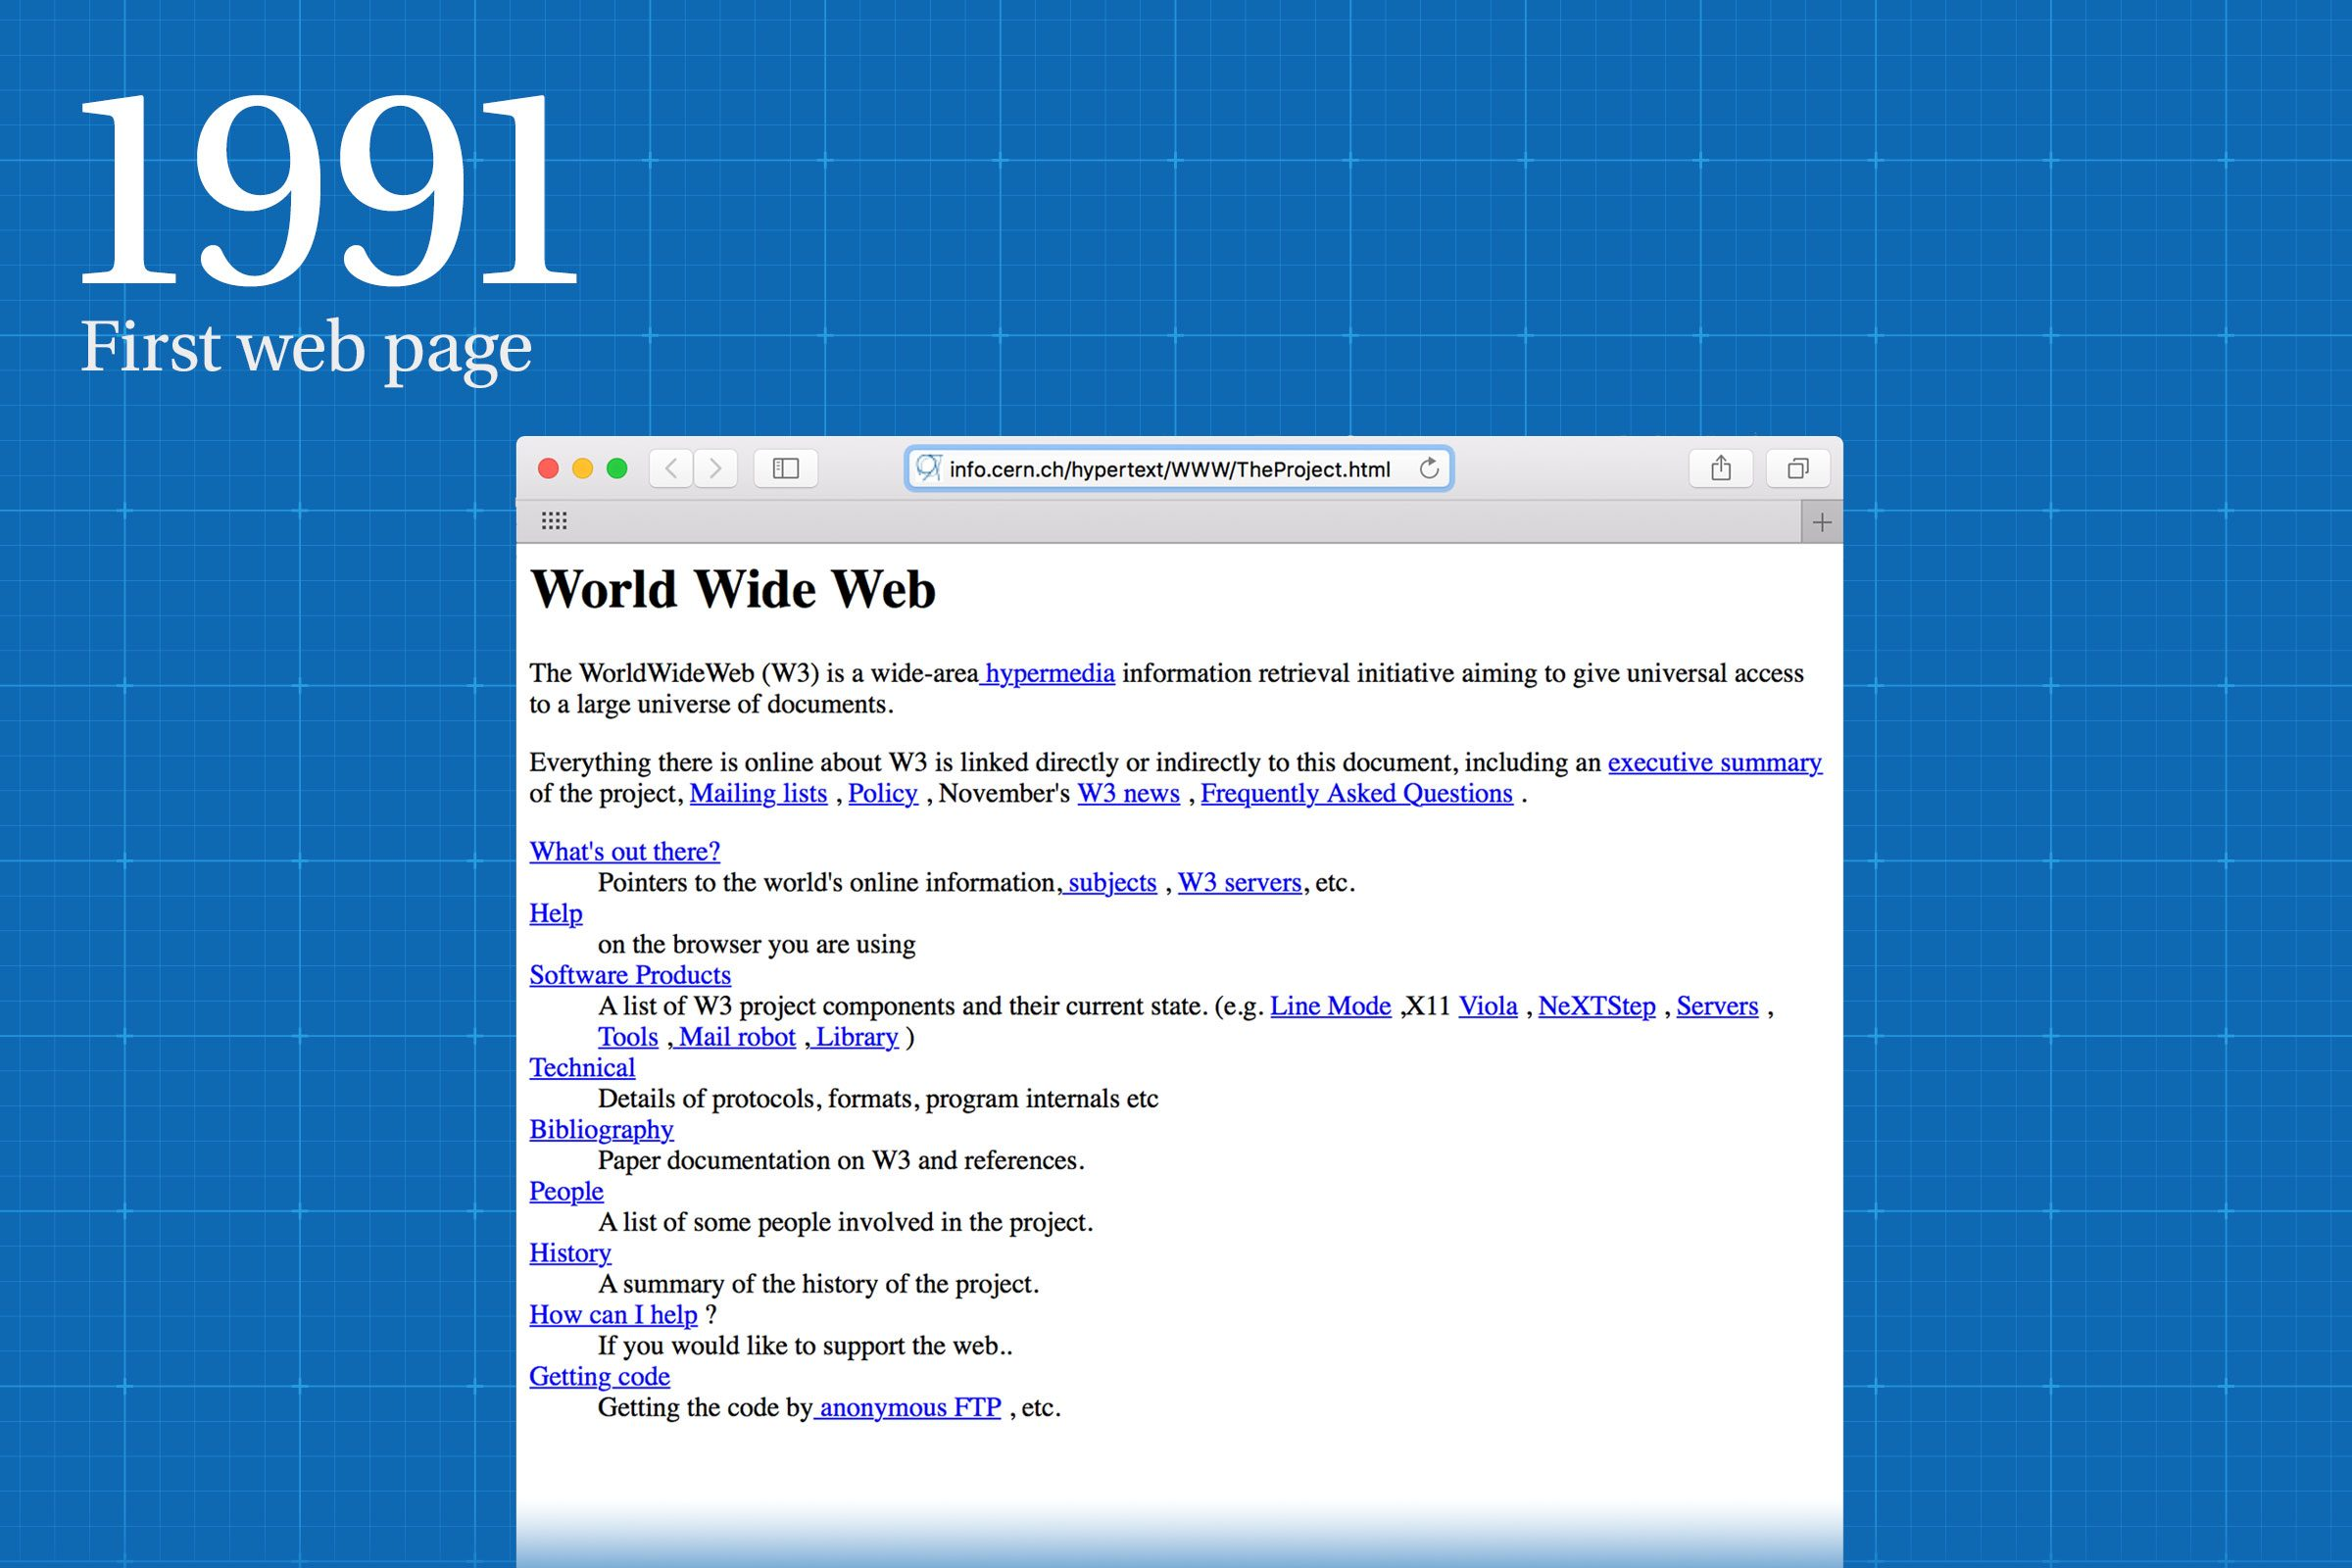 1991: The first web page